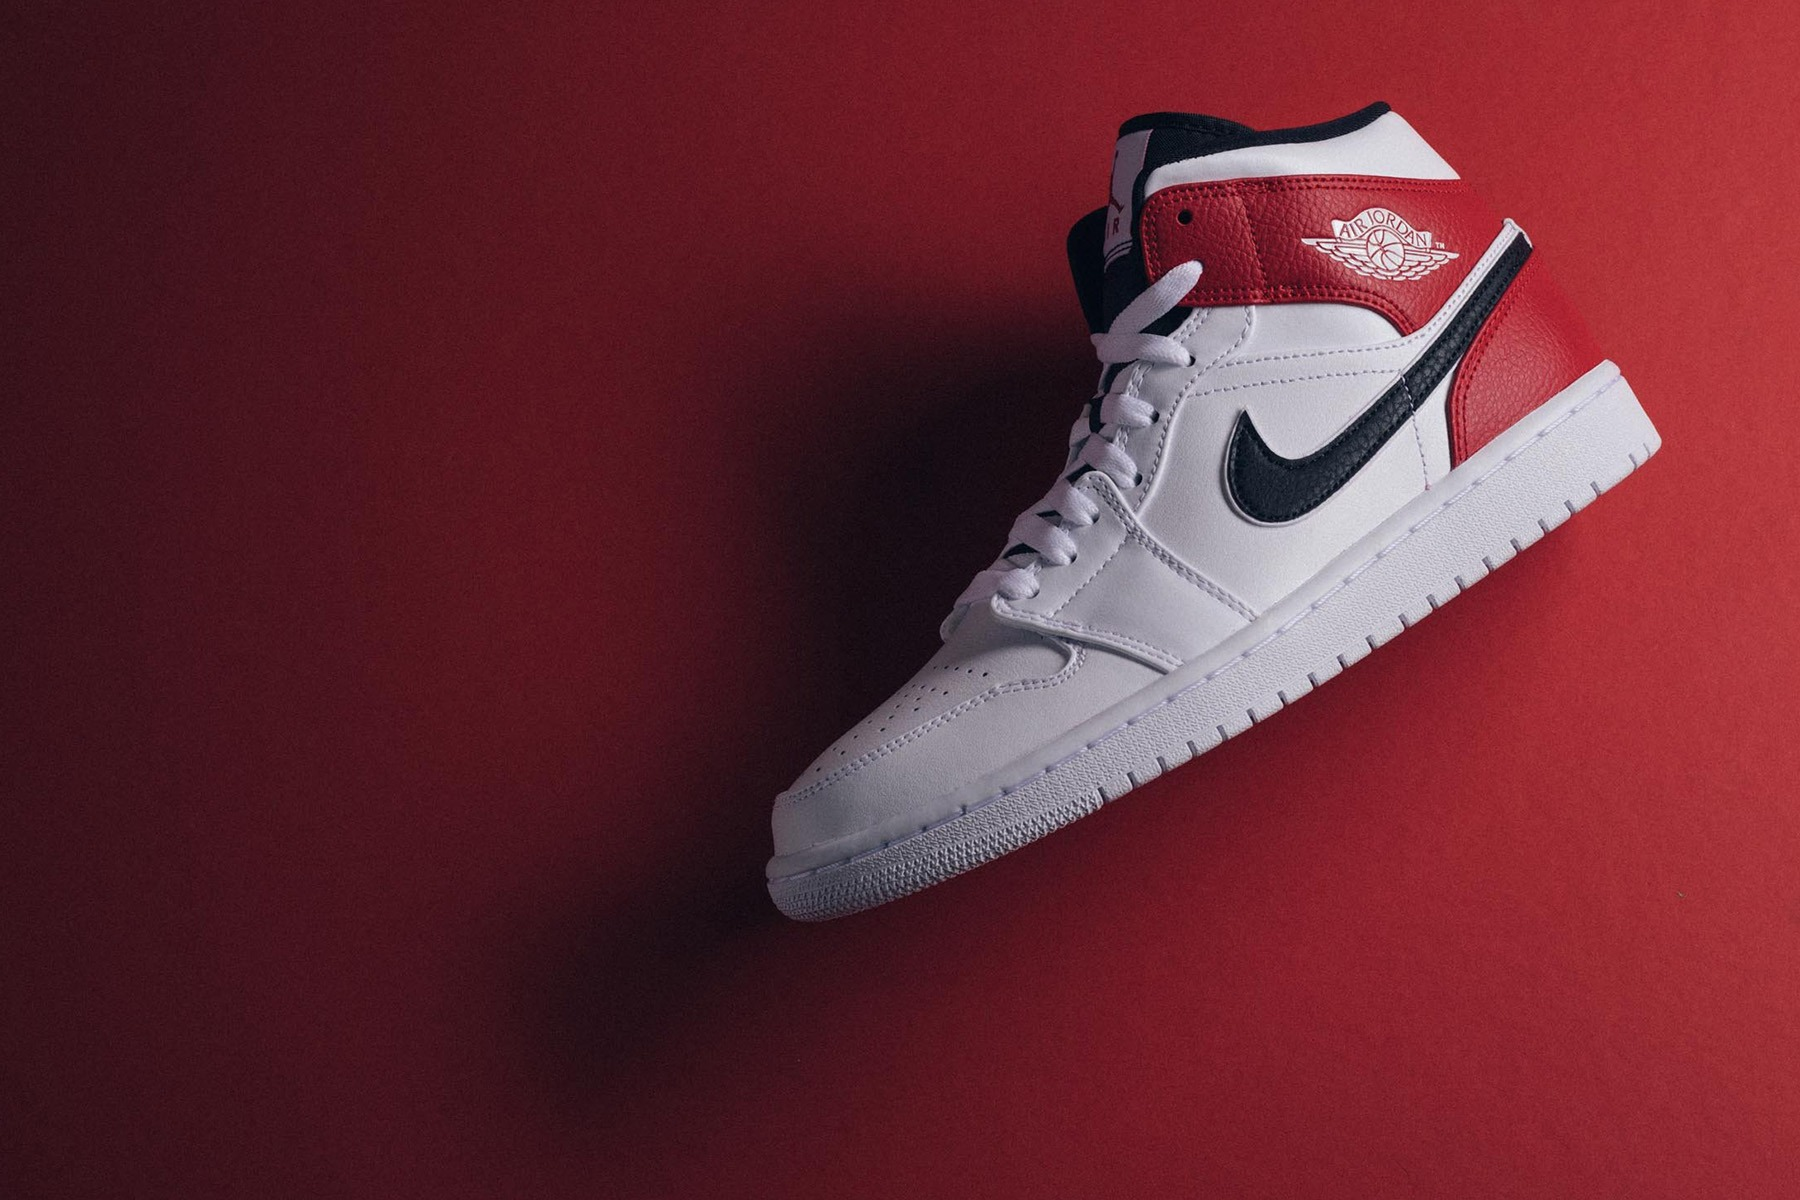 separation shoes 24221 93394 Jordan Brand is working with Chicago Bulls team colors to sculpt its latest Air  Jordan 1 Mid release. The drop is leather built in mostly white with black  ...